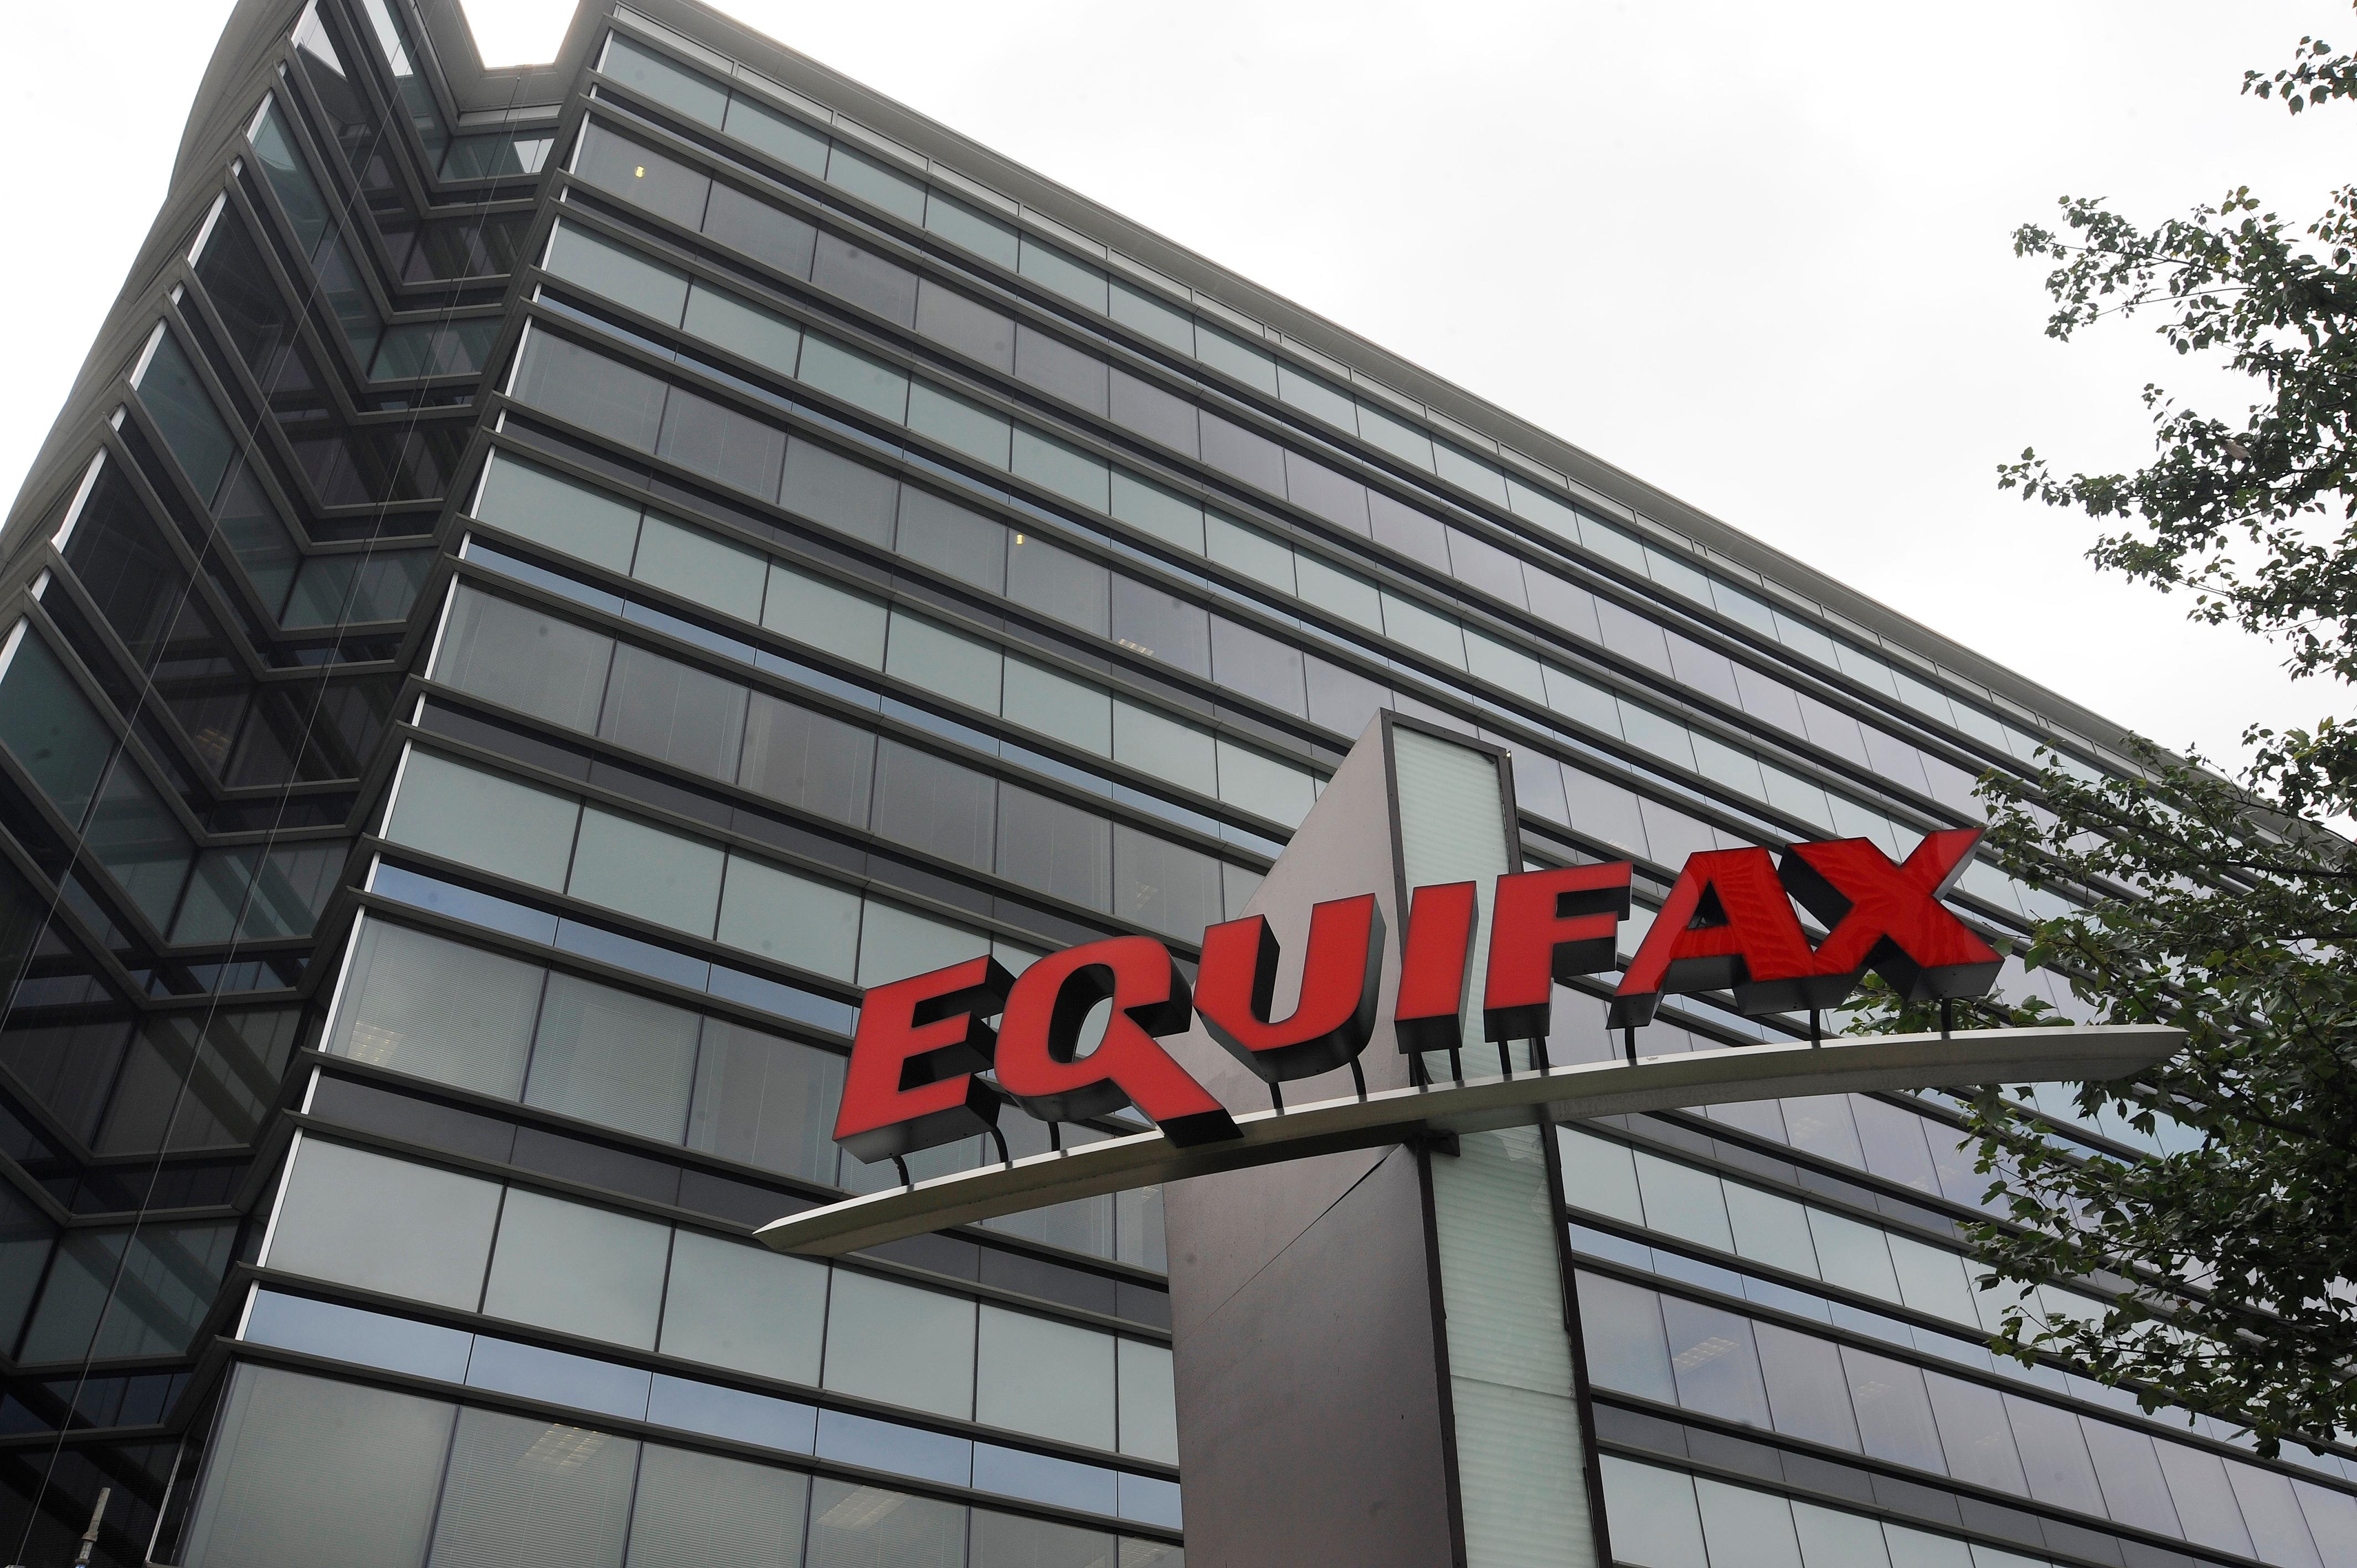 "This July 21, 2012, photo shows Equifax Inc., offices in Atlanta. Credit monitoring company Equifax says a breach exposed social security numbers and other data from about 143 million Americans. The Atlanta-based company said Thursday, Sept. 7, 2017, that ""criminals"" exploited a U.S. website application to access files between mid-May and July of this year. (AP Photo/Mike Stewart)"